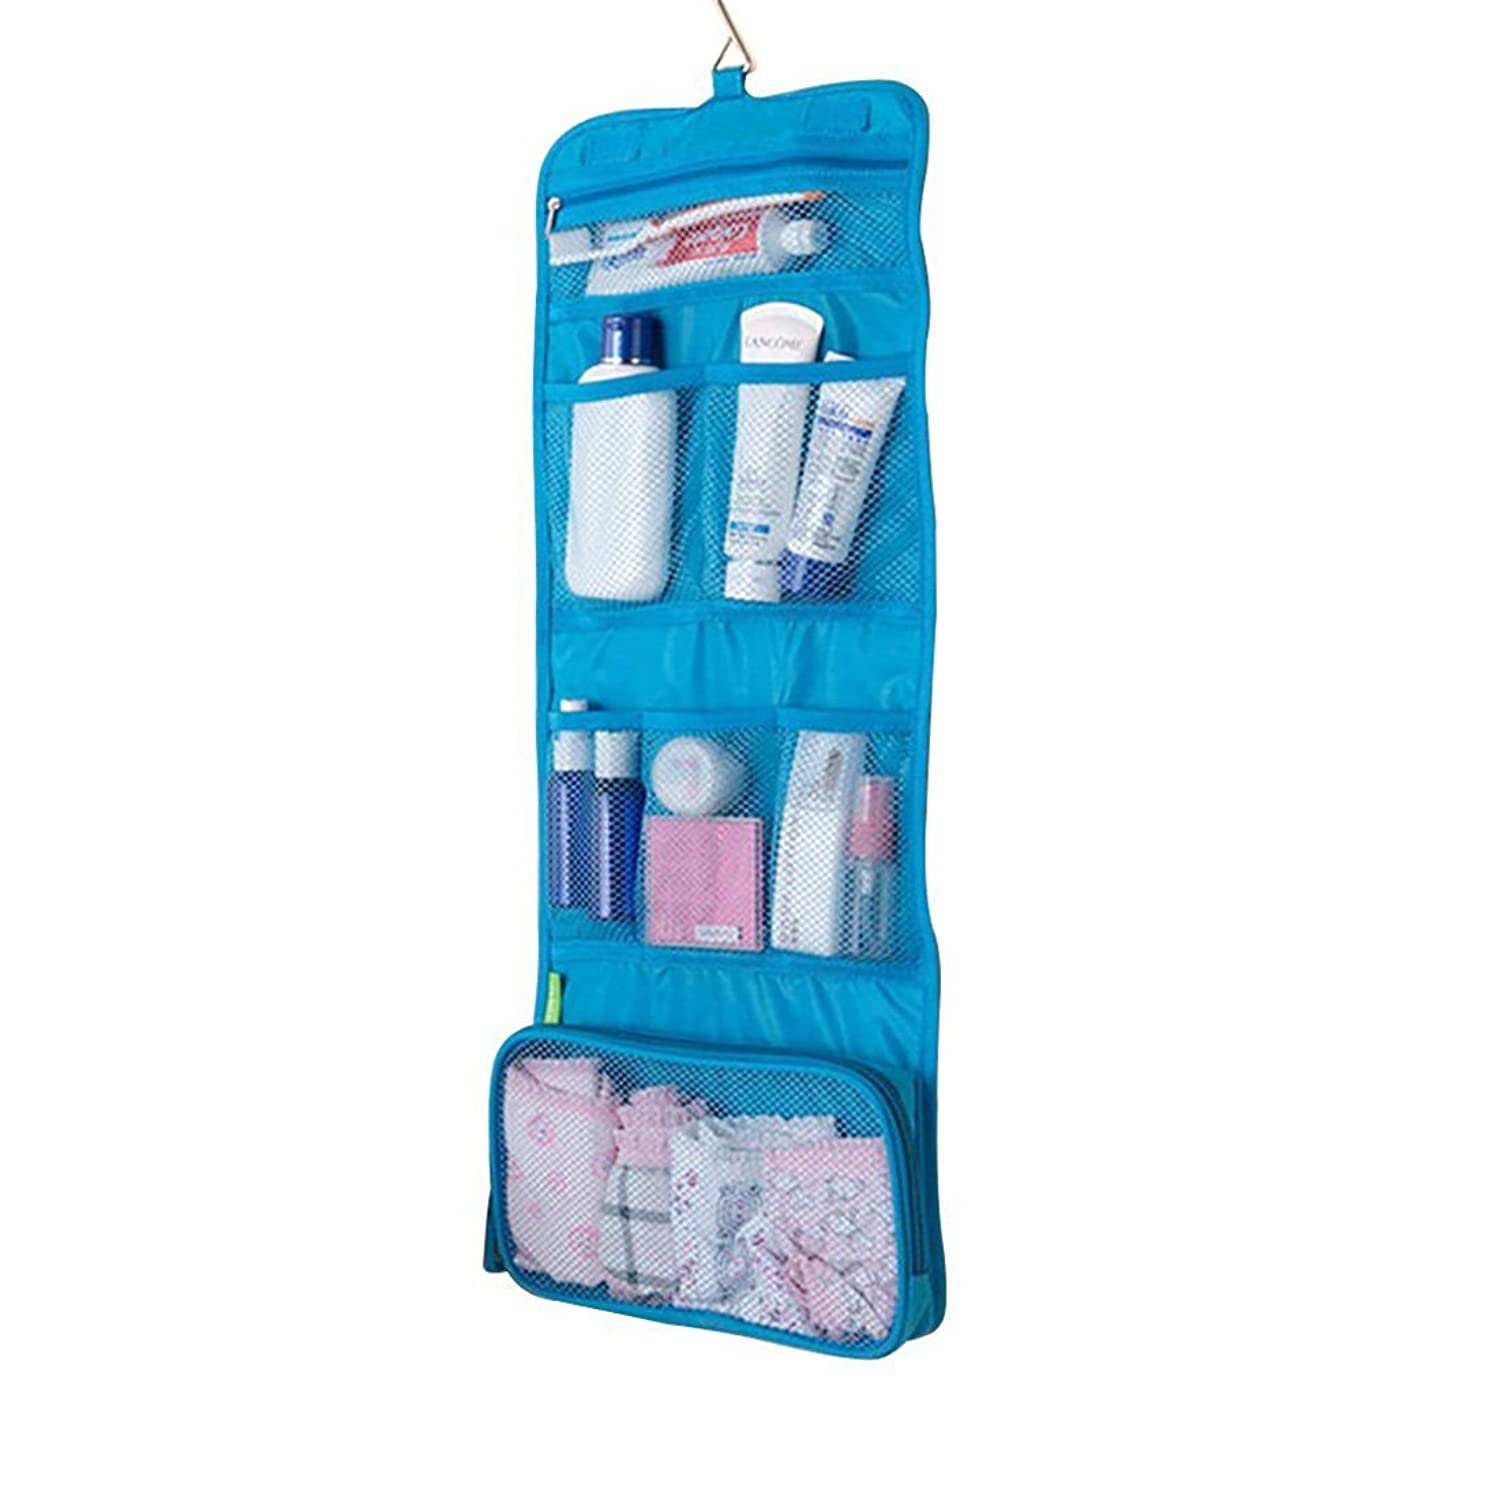 Portable Folding Travel Toiletry Hanging Wash Bag with Hook La s